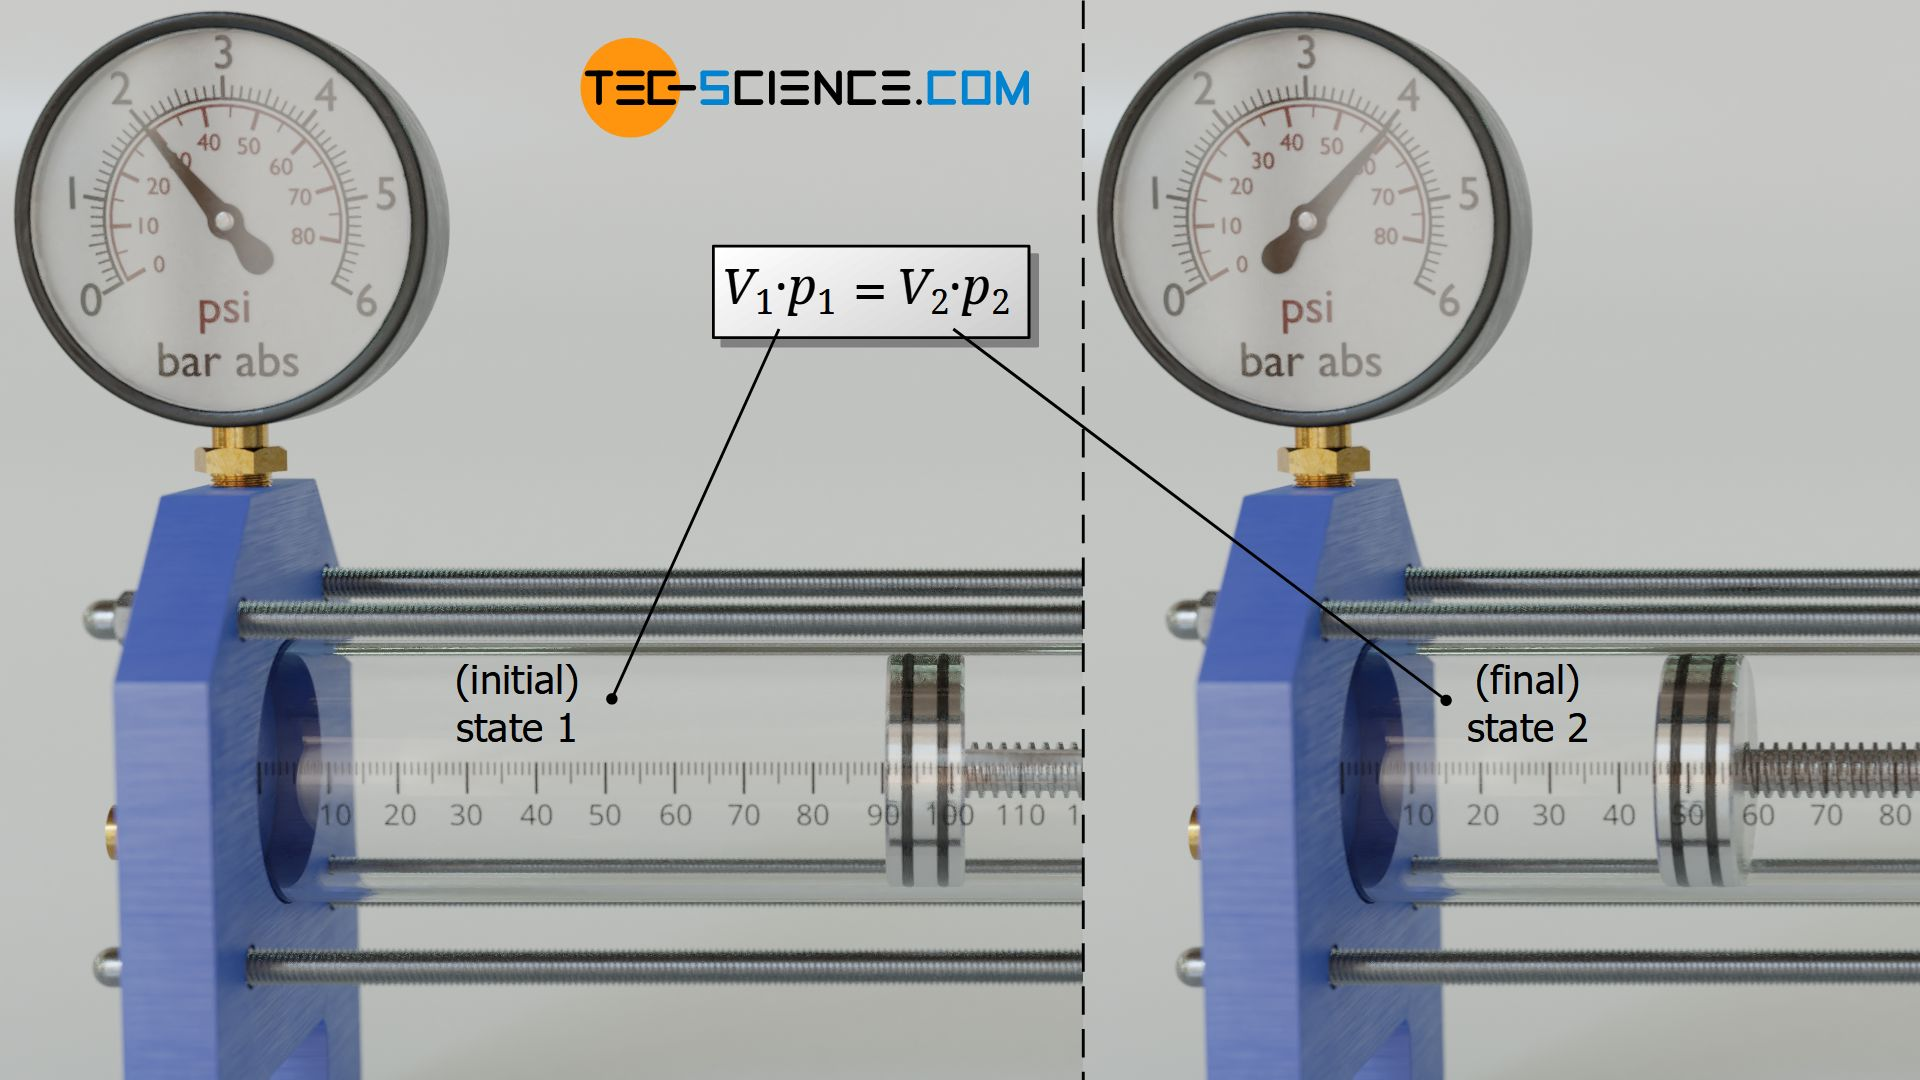 Linking two states of an isothermal process